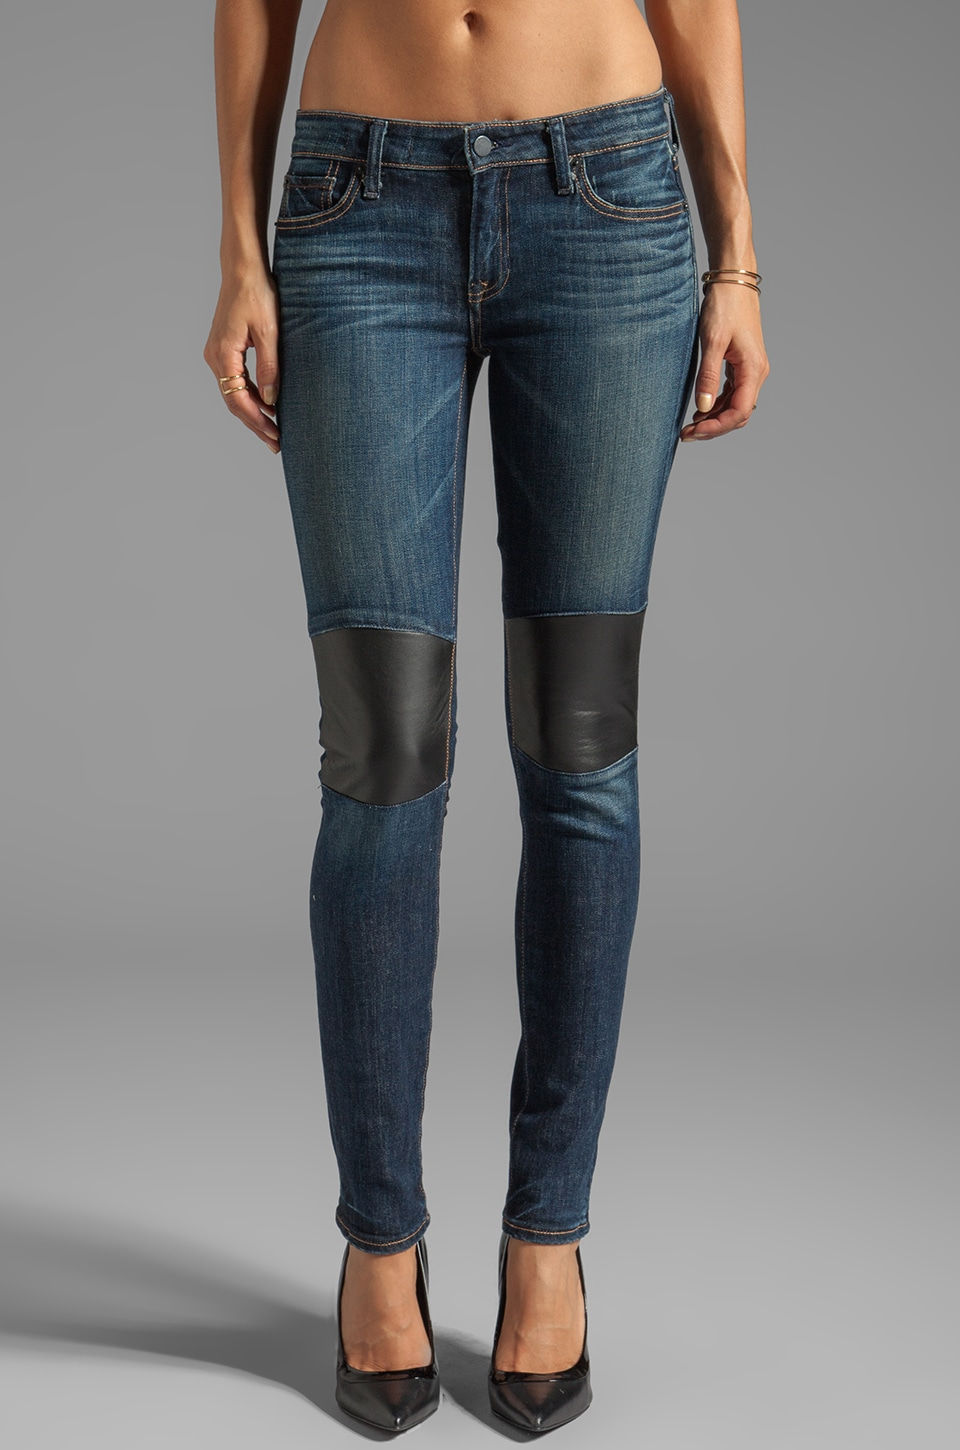 TEXTILE Elizabeth and James Tommy Skinny with Leather Knee Patch in Festival